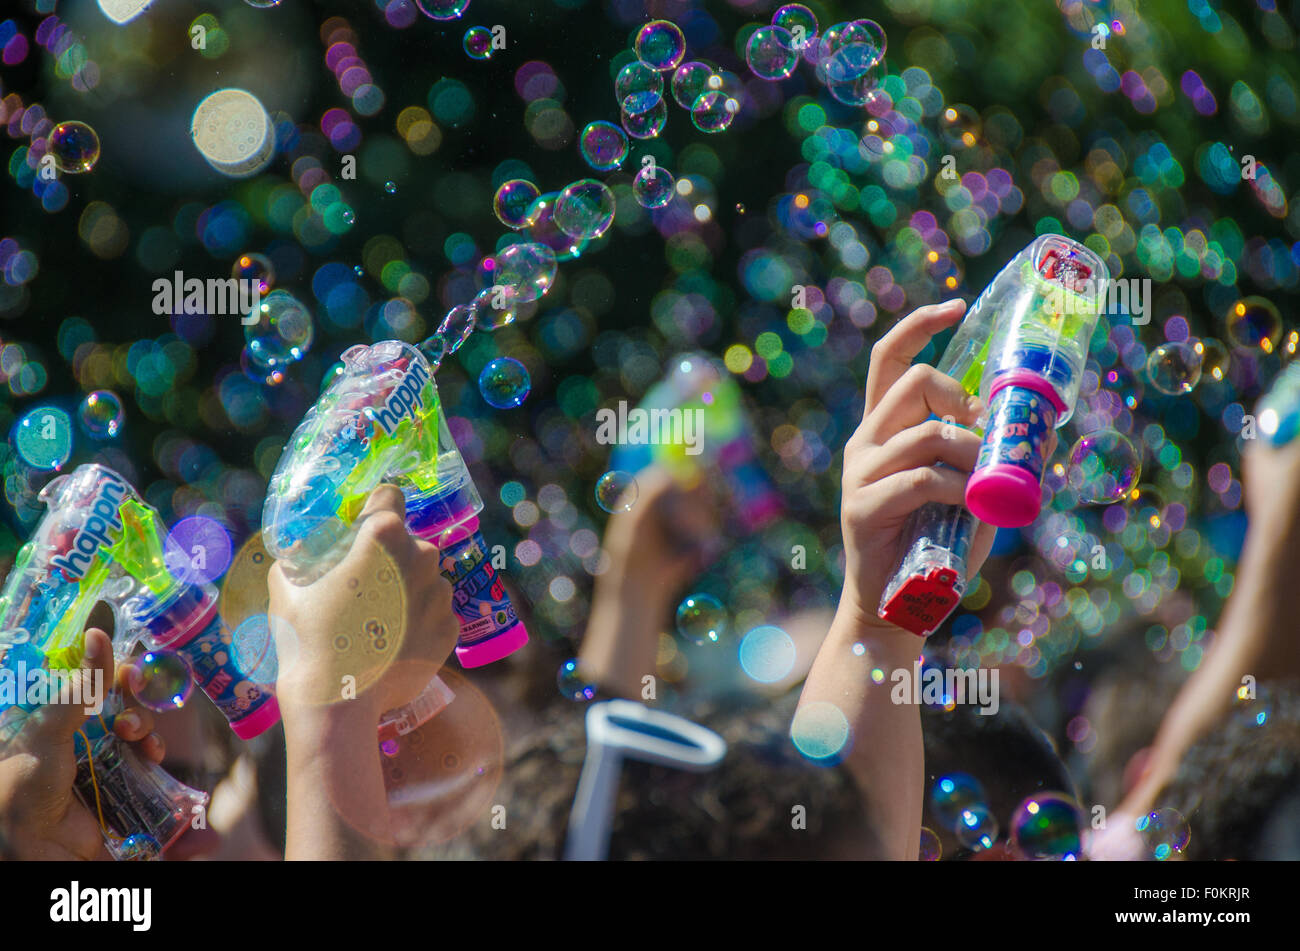 Millions of bubbles float through the air at New York City's annual buble gun battle in Union Square Park. - Stock Image